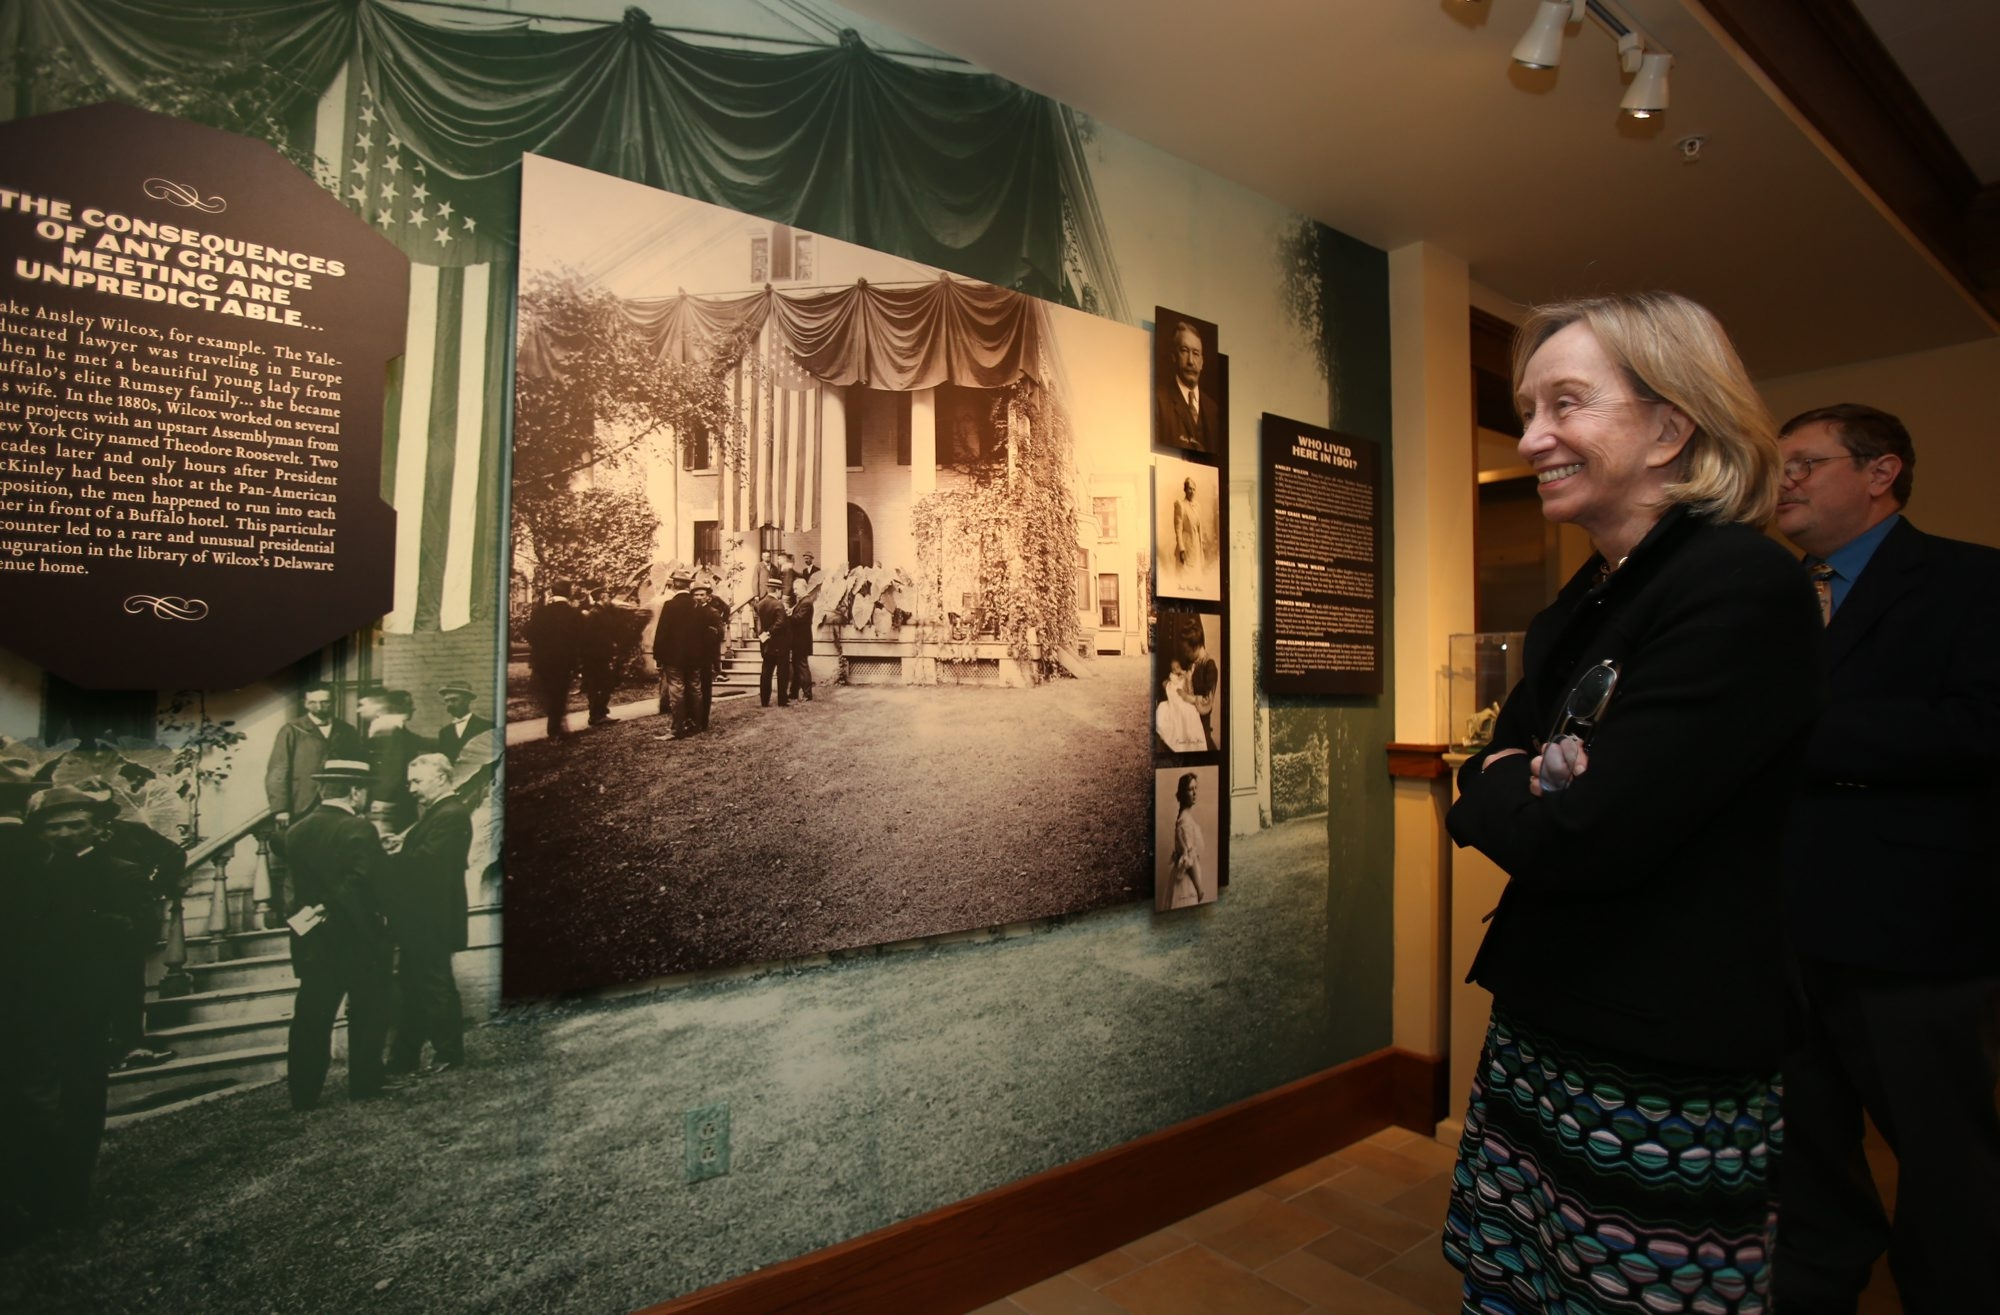 Mark Lozo, education director for the Theodore Roosevelt Inaugural National Historic Site, gives historian and author Doris Kearns Goodwin a personal tour.